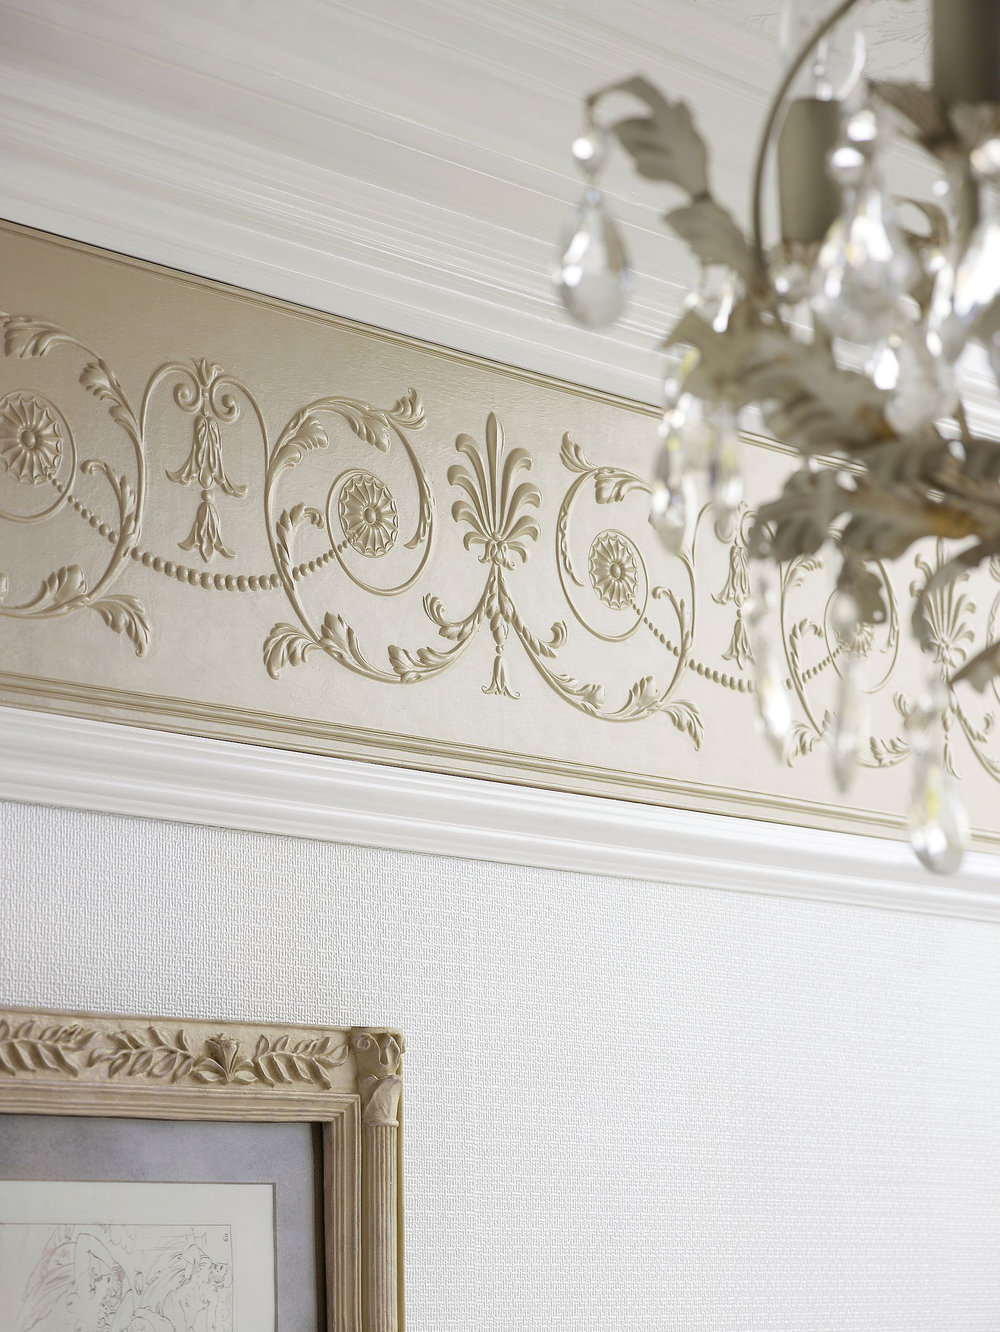 Diana Frieze by Lincrusta - Paintable : Wallpaper Direct